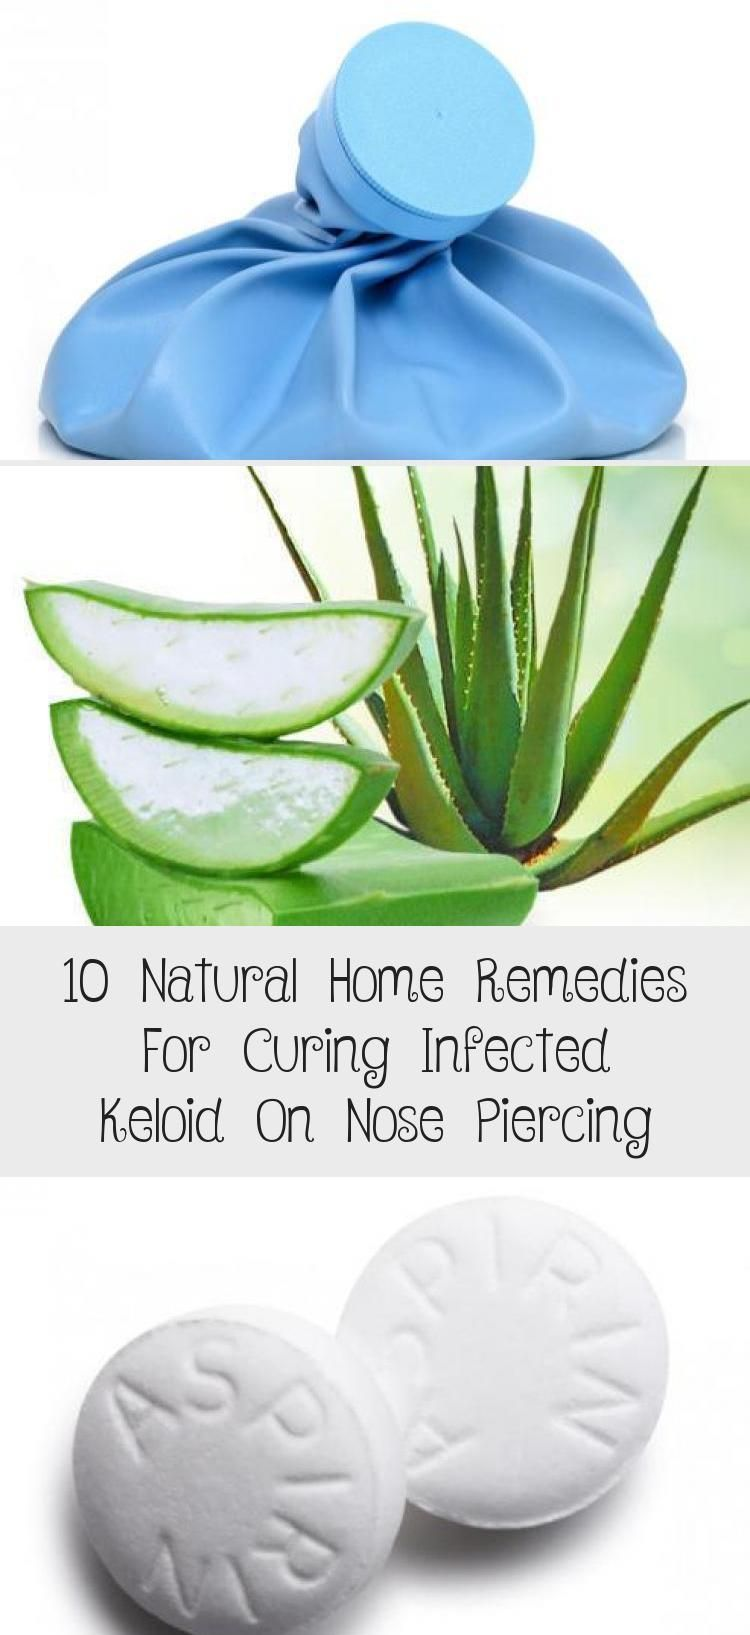 10 Natural Home Remedies For Curing Infected Keloid On Nose Piercing  PIERCINGS  Nose Piercing Bump  Causes  Treatments Guide Home Remedies To Get Rid Of Infected Nose Pi...